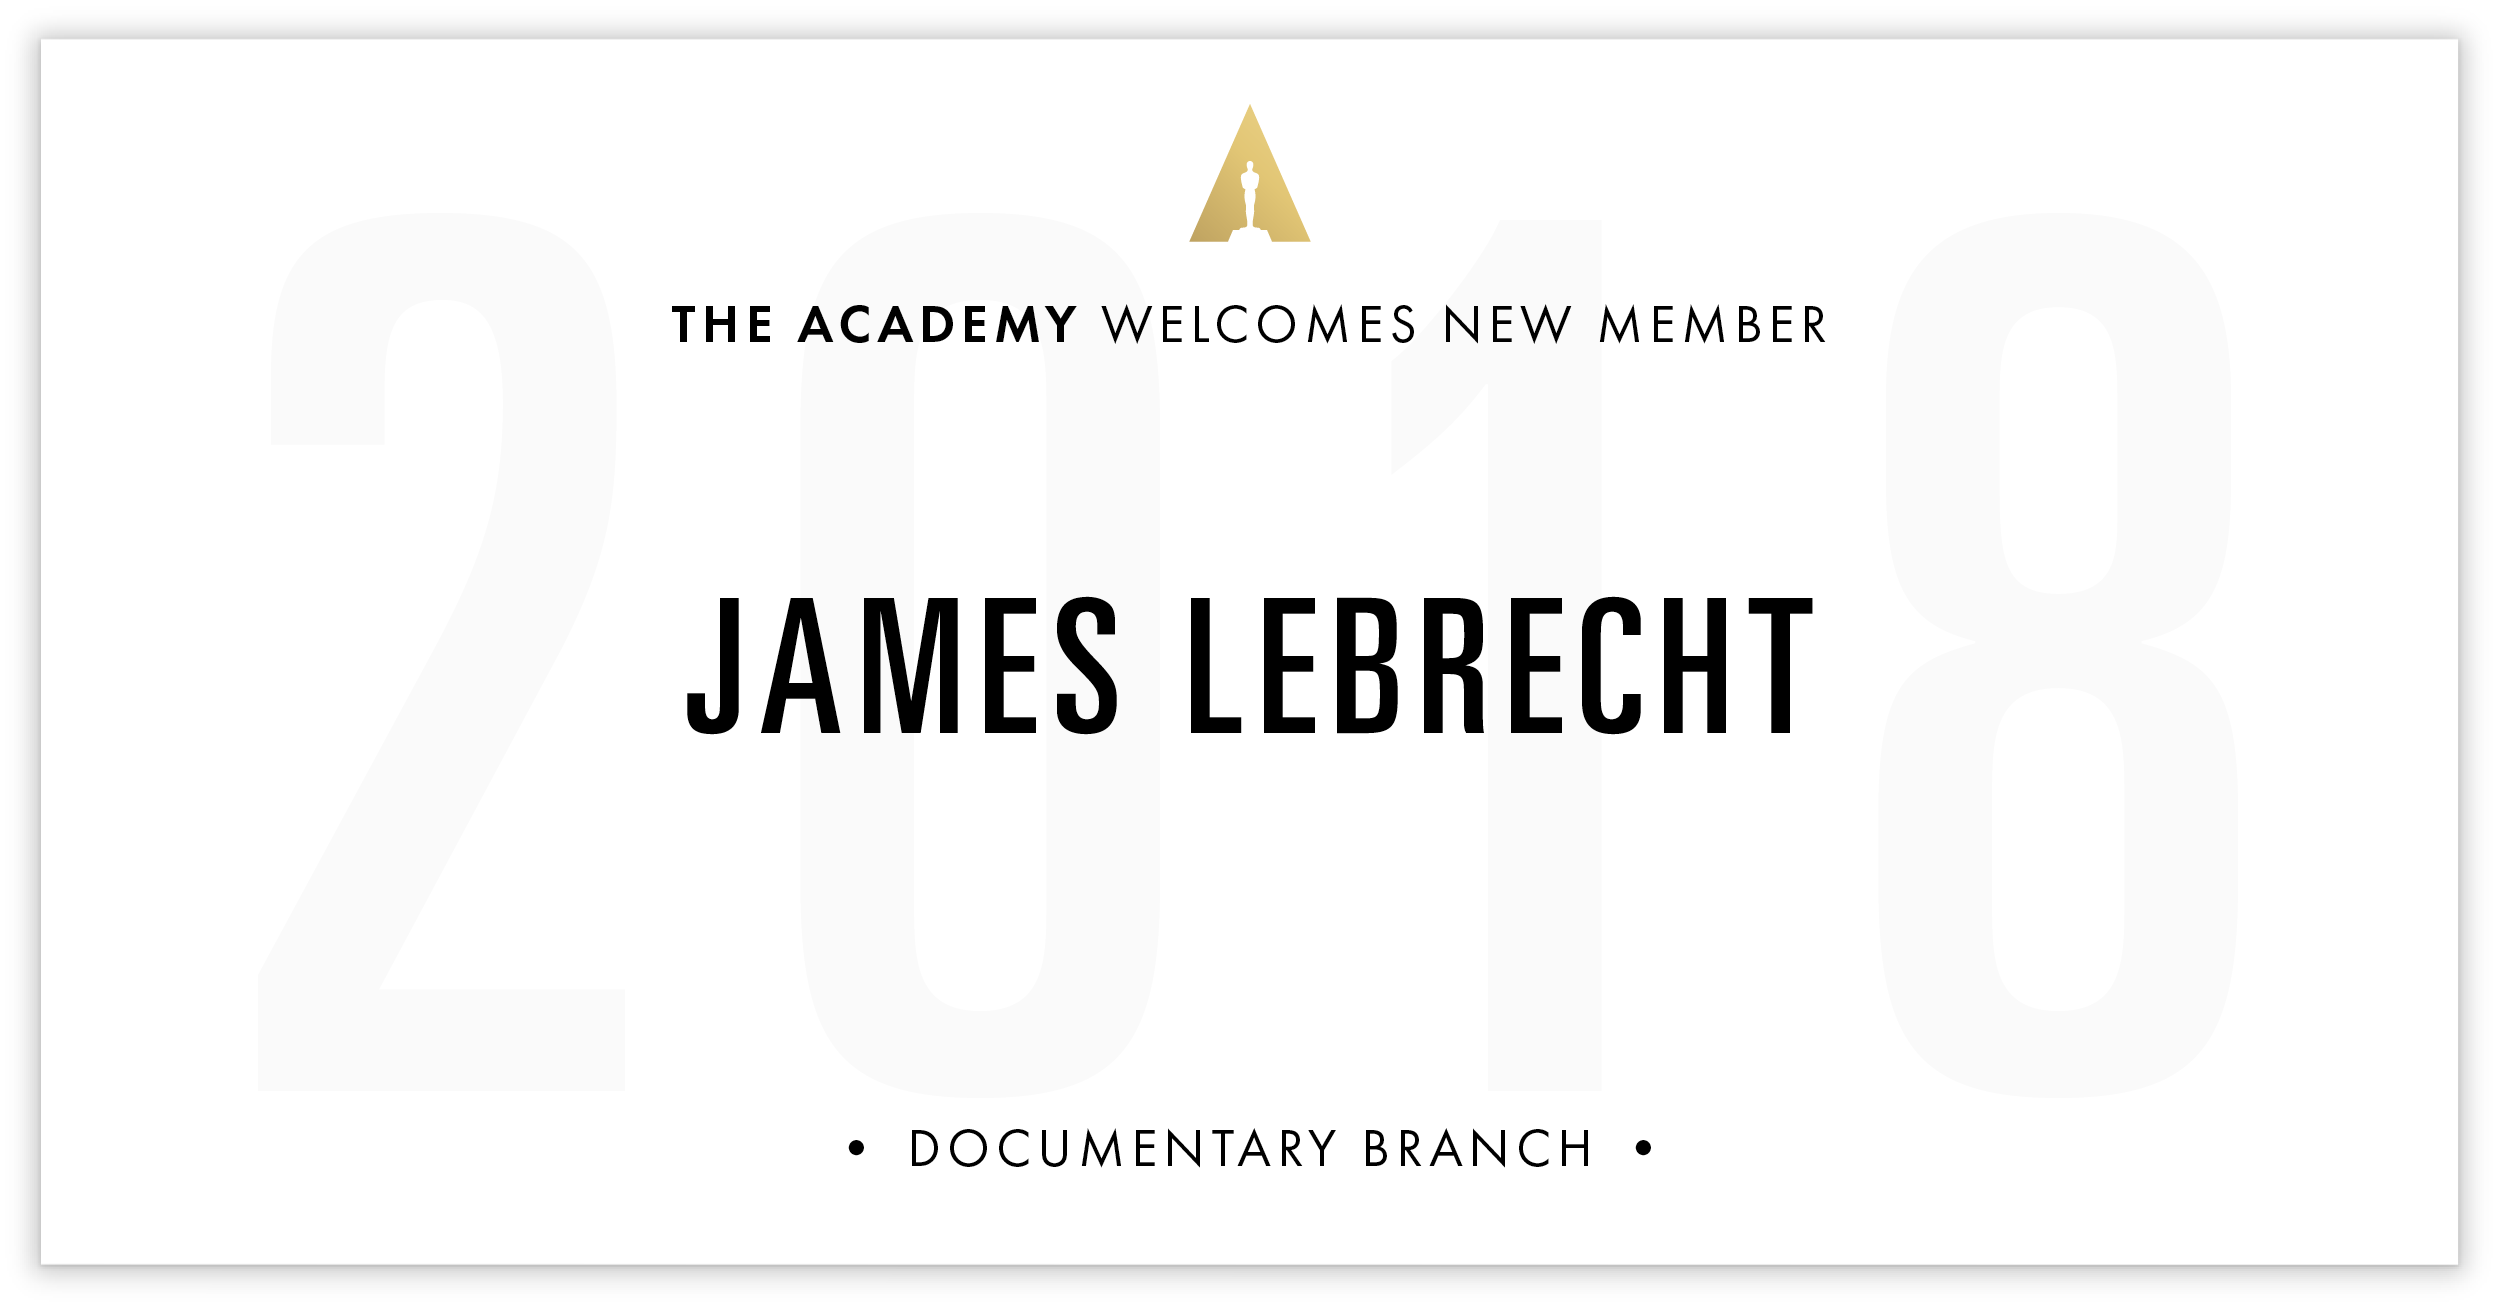 James LeBrecht is invited!